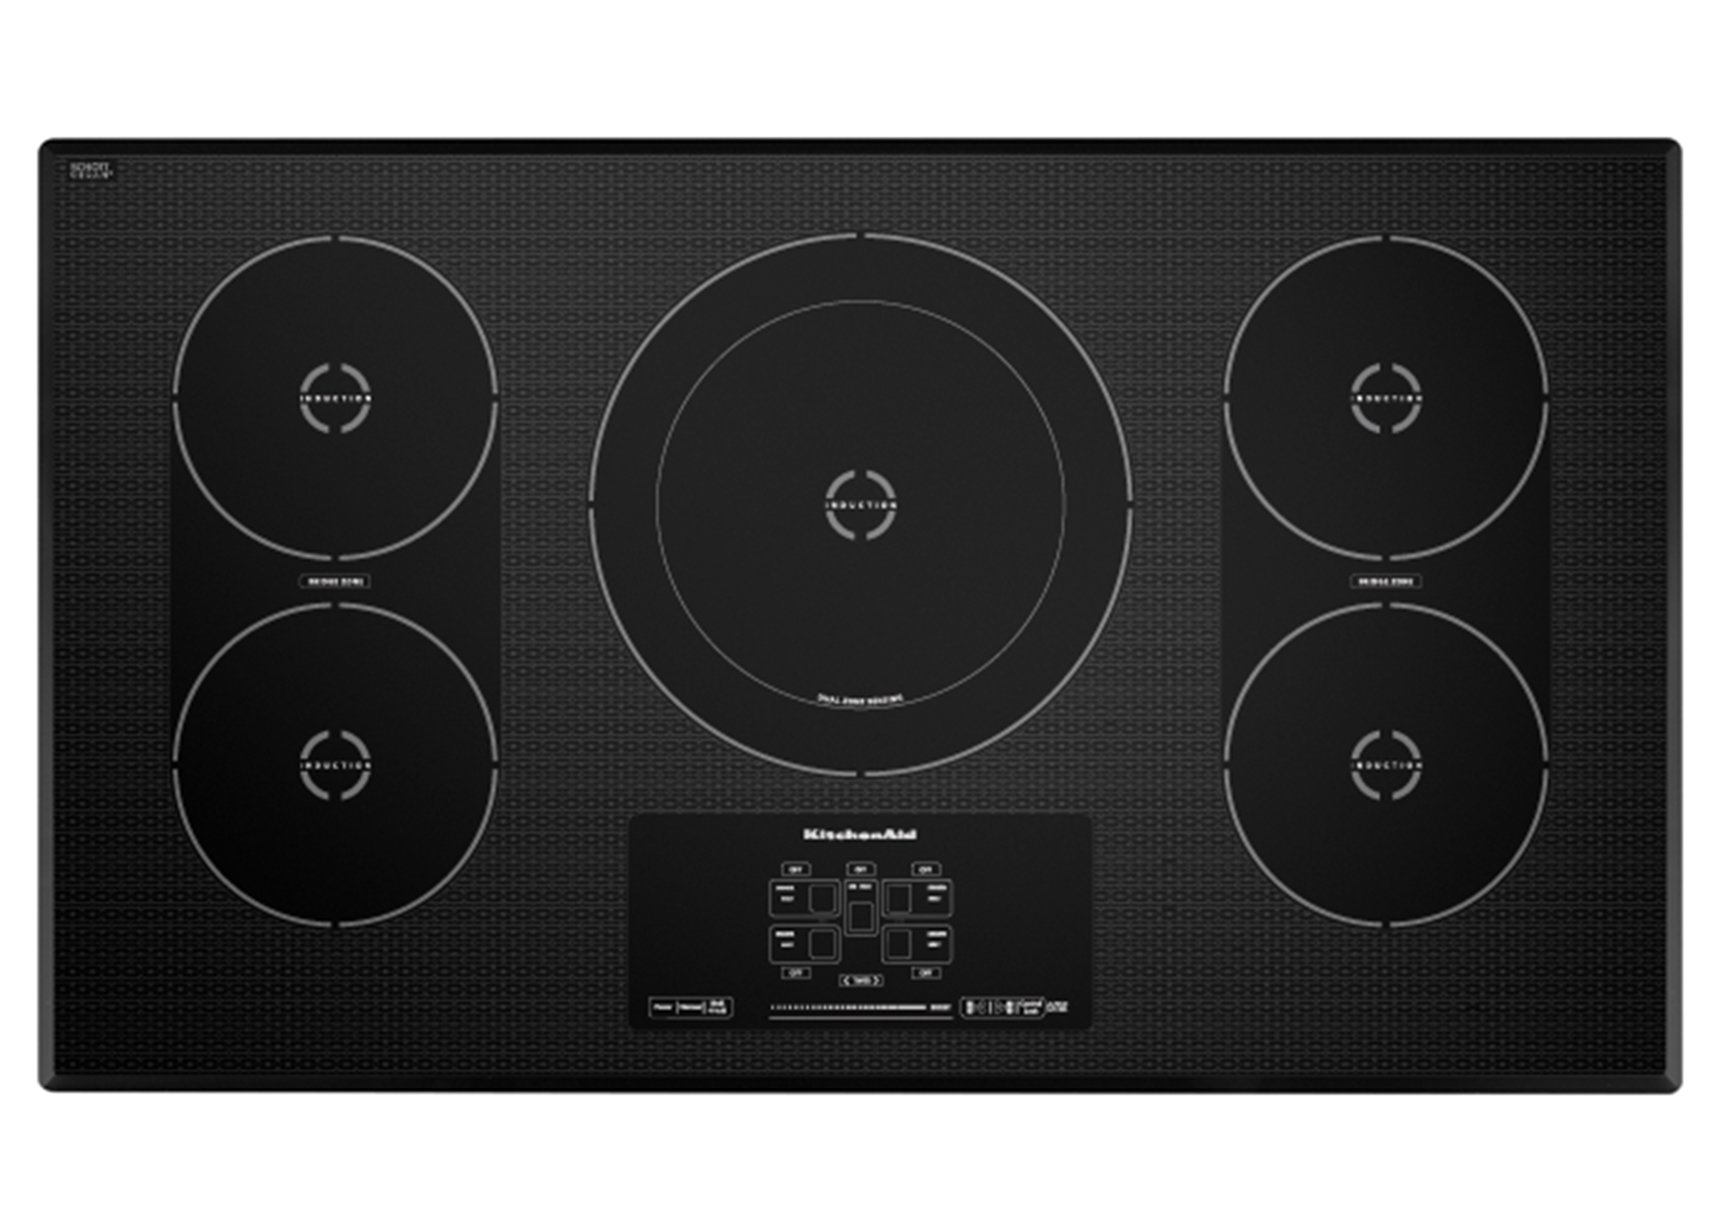 The Magnetic Appeal of Induction Cooking